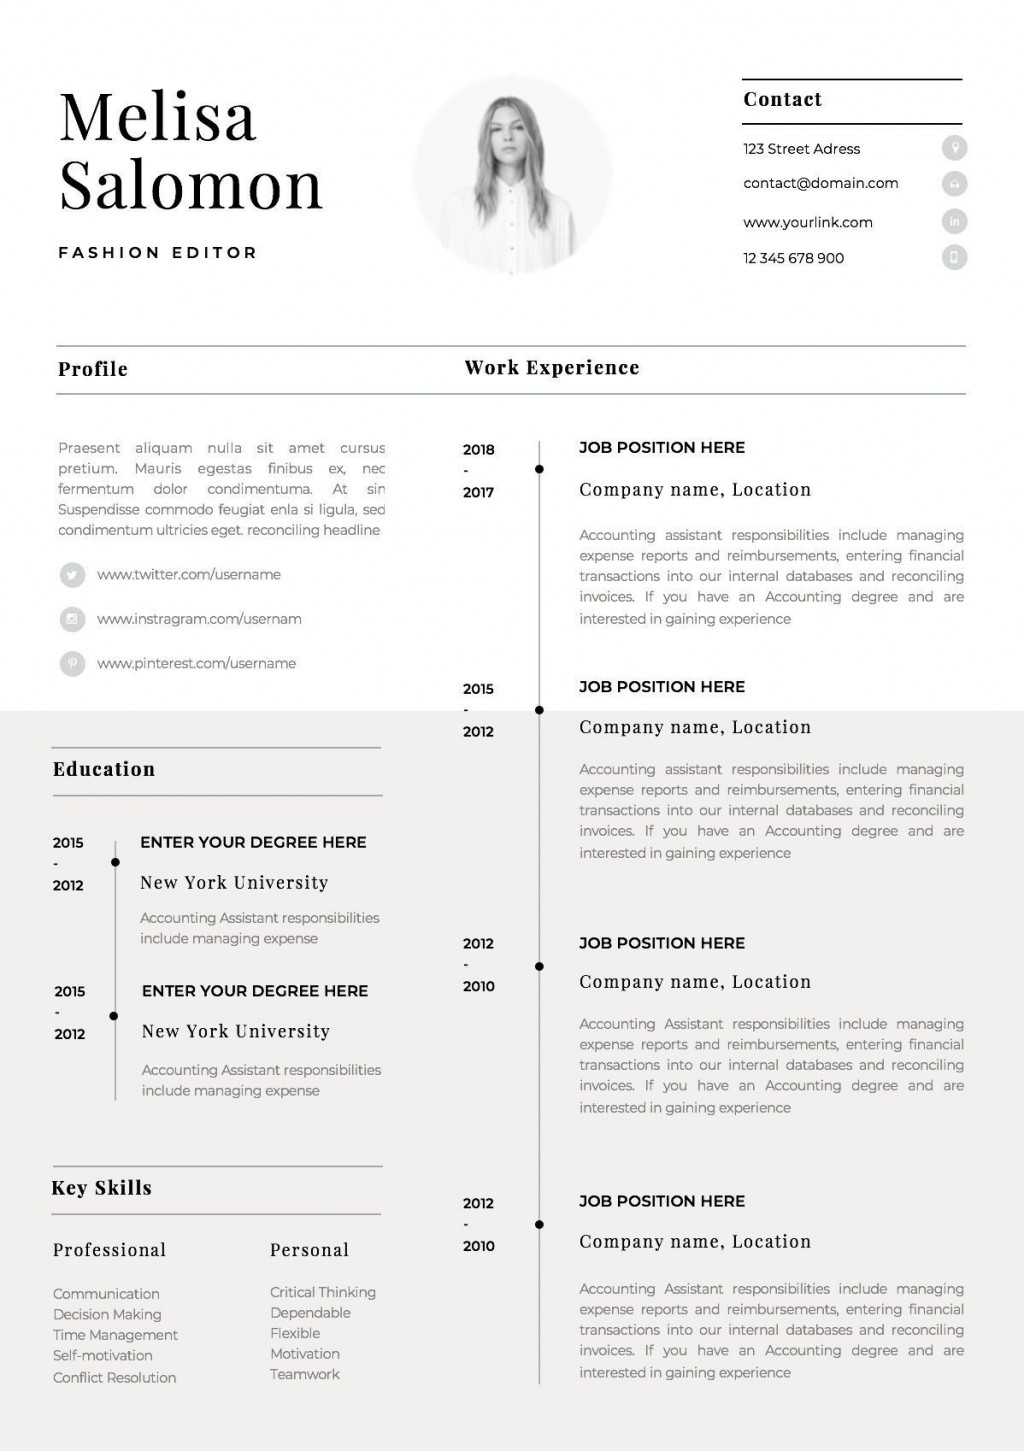 000 Exceptional Resume Template On Word Highest Quality  2007 Download 2016 How To Get 2010Large